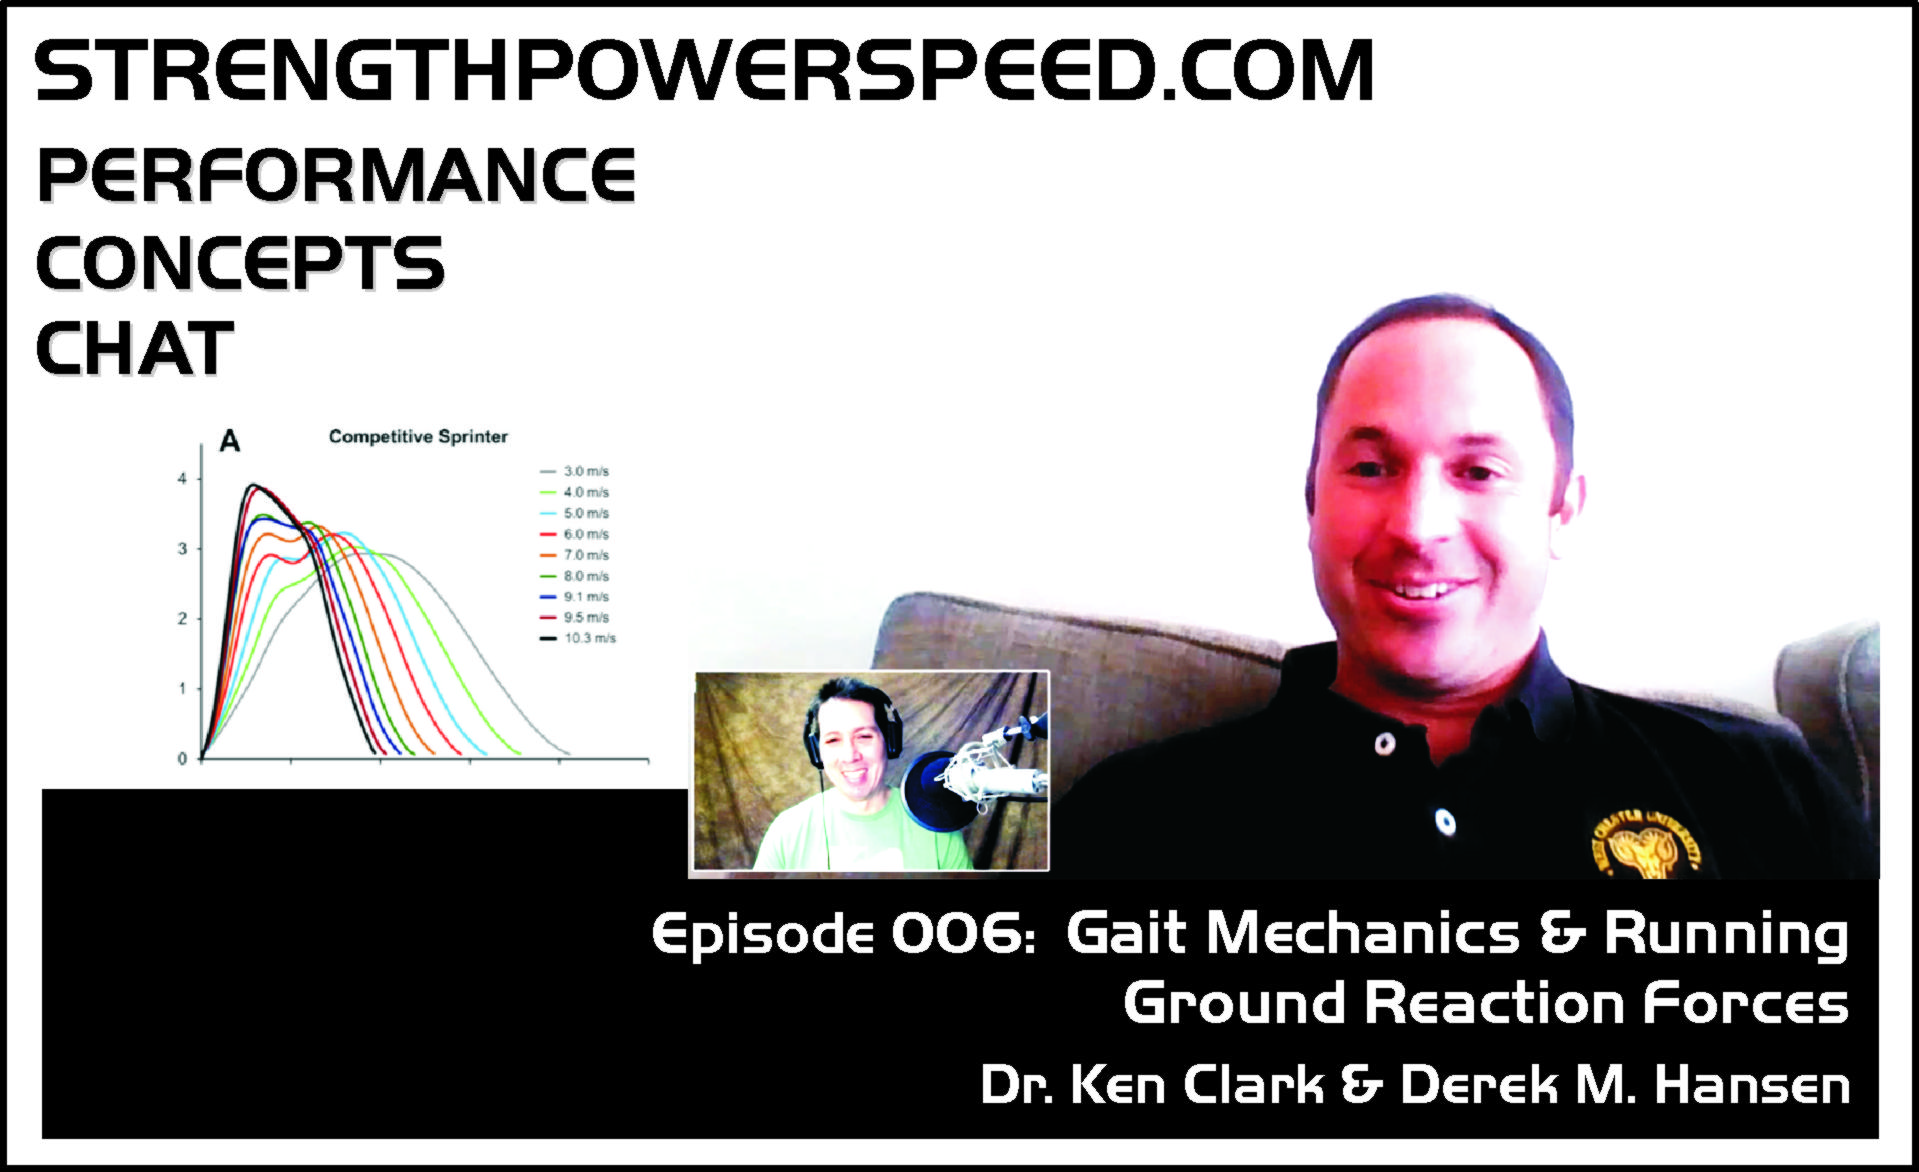 SPS Performance Concepts Chat – Episode 006:  Dr. Ken Clark – Gait Mechanics and Running Ground Reaction Forces